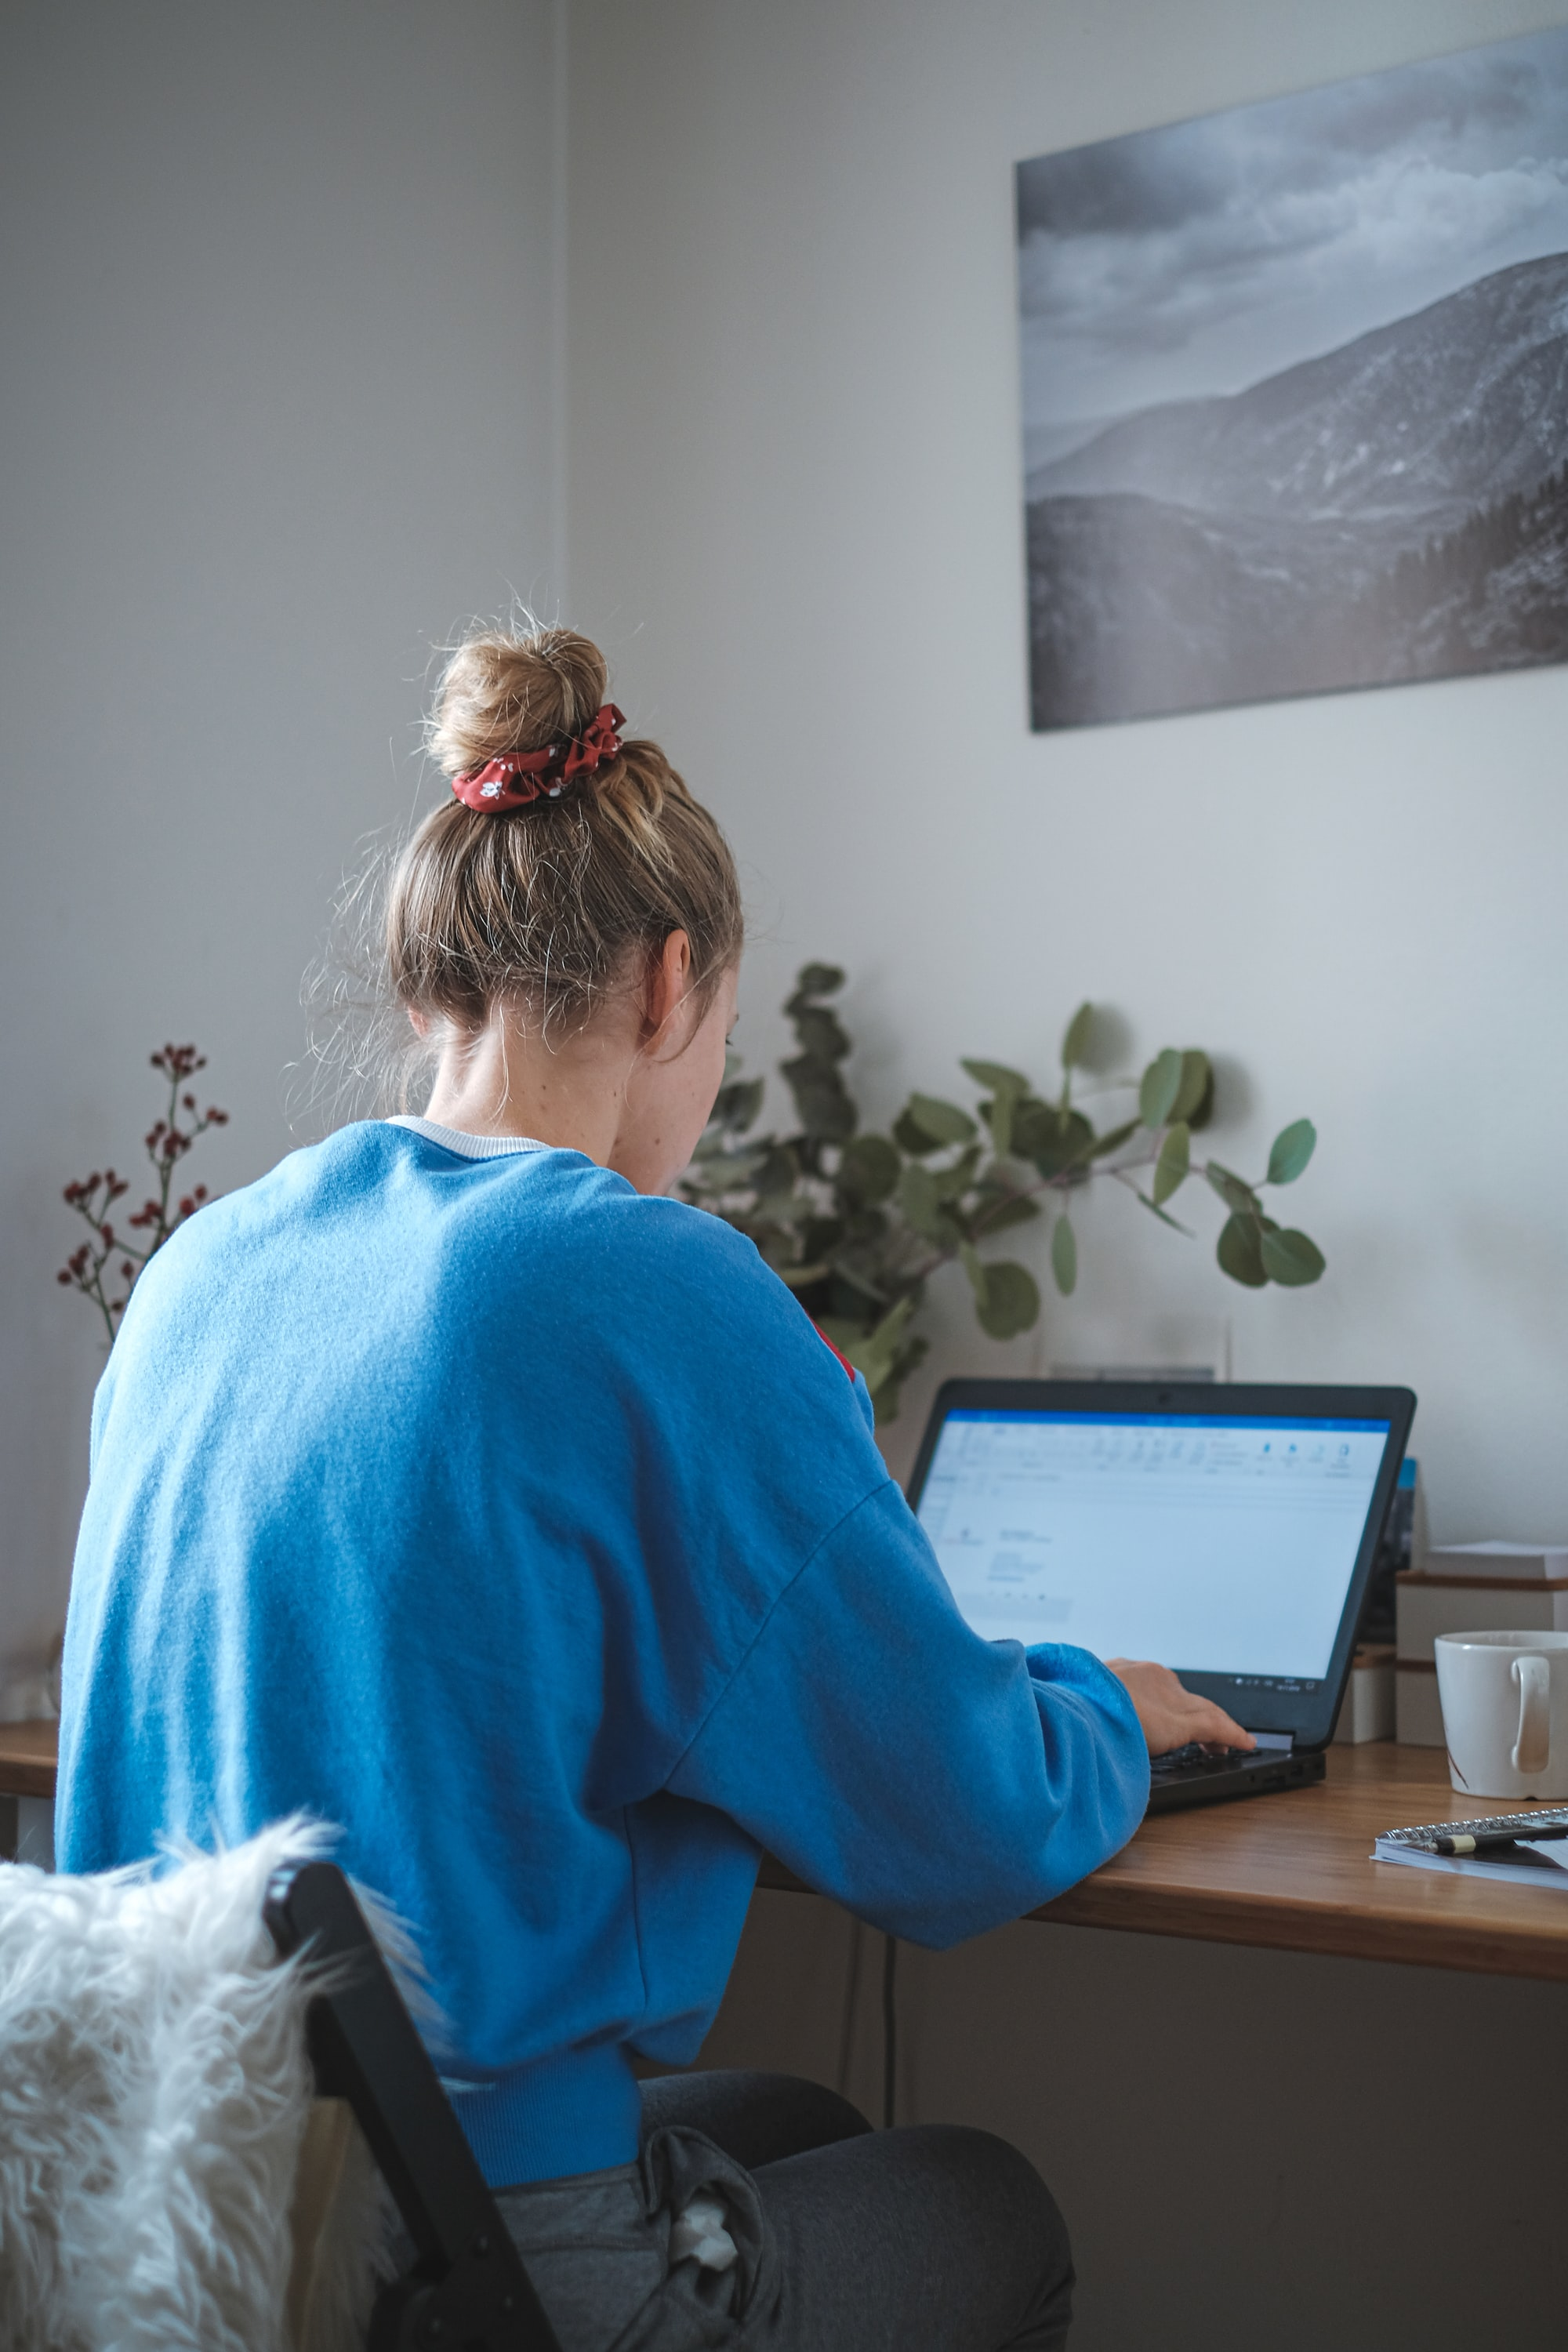 The young woman in her a home office